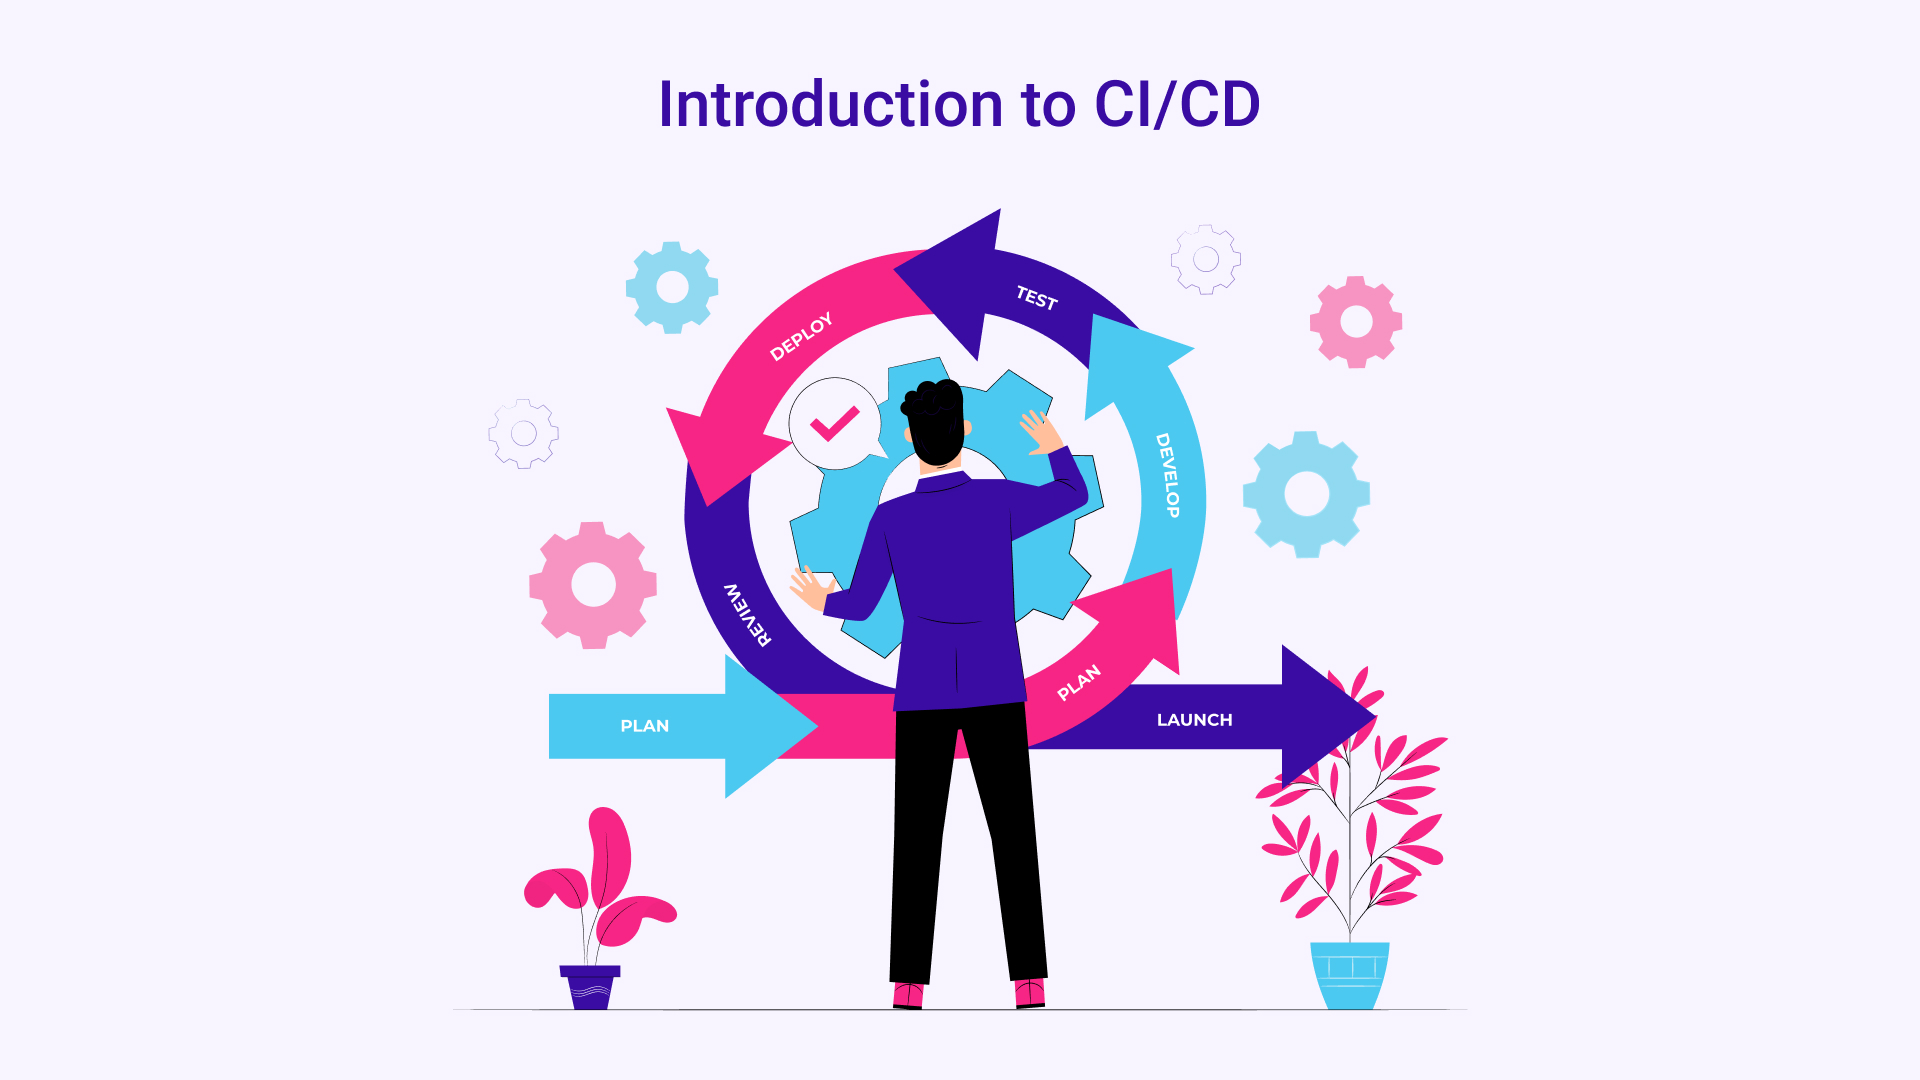 Introduction of CI/CD